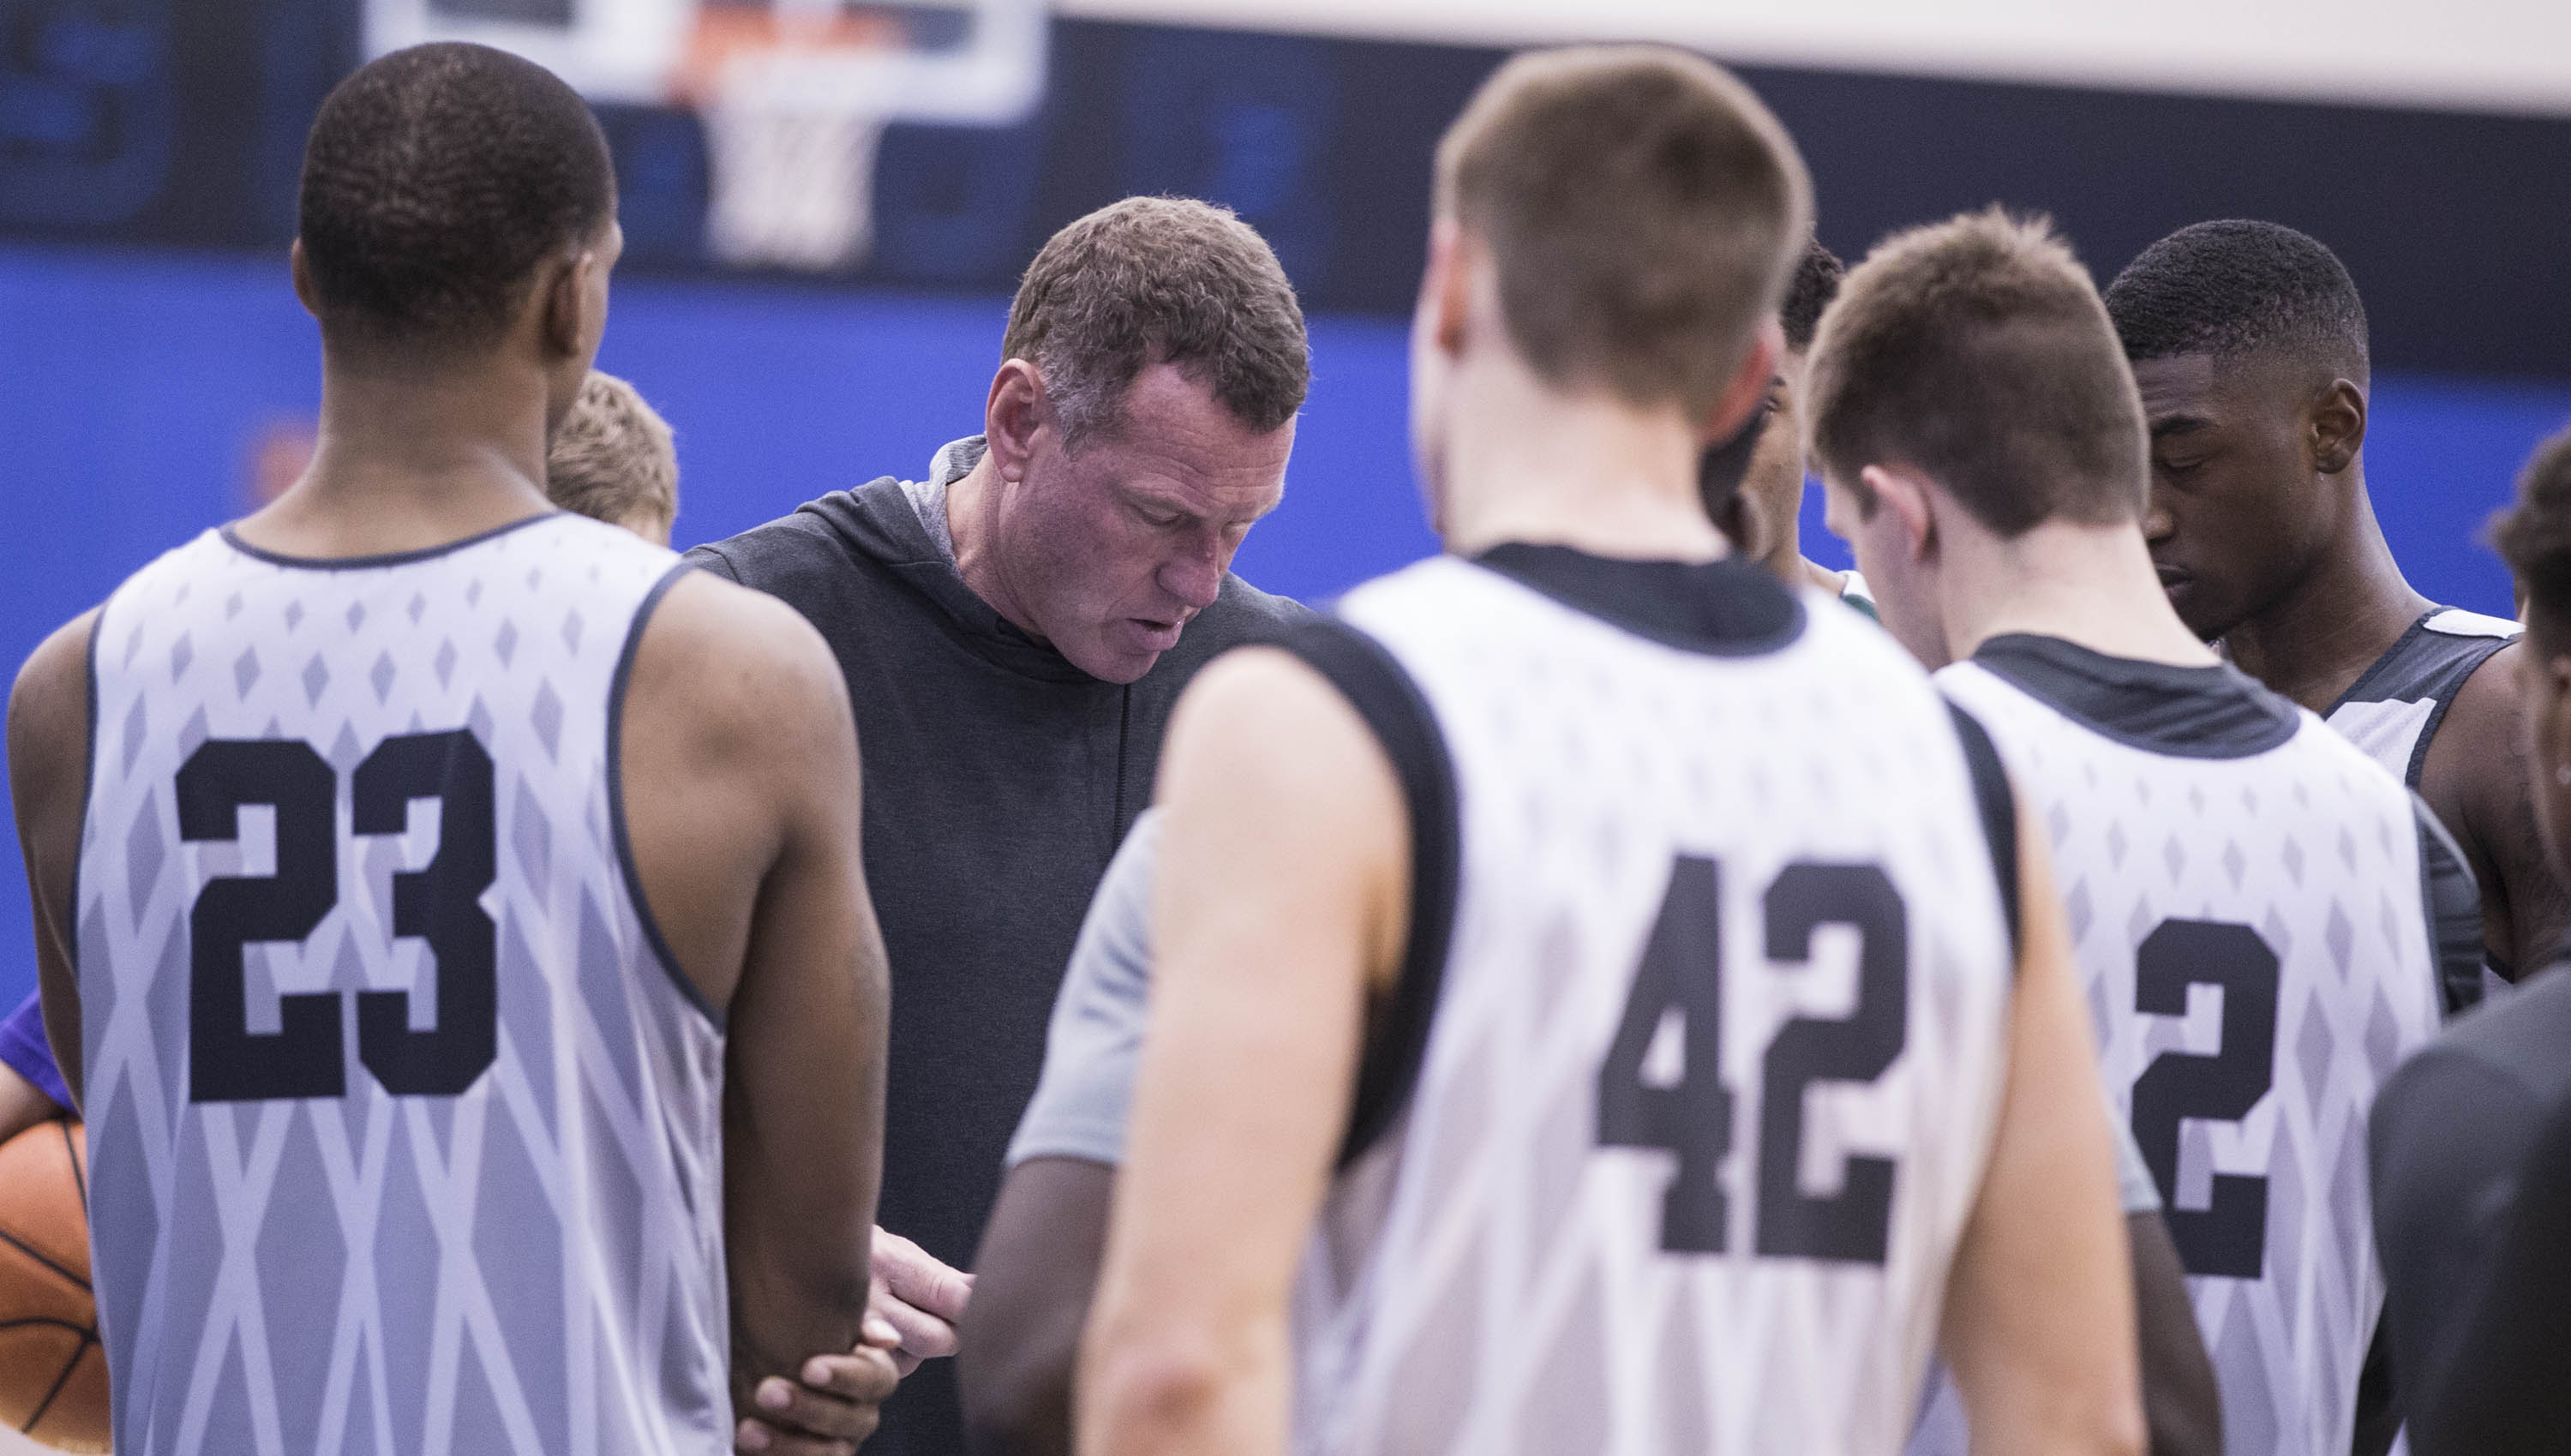 finest selection 9a439 f493e Slideshow: Lopes practice at Duke - GCU Today